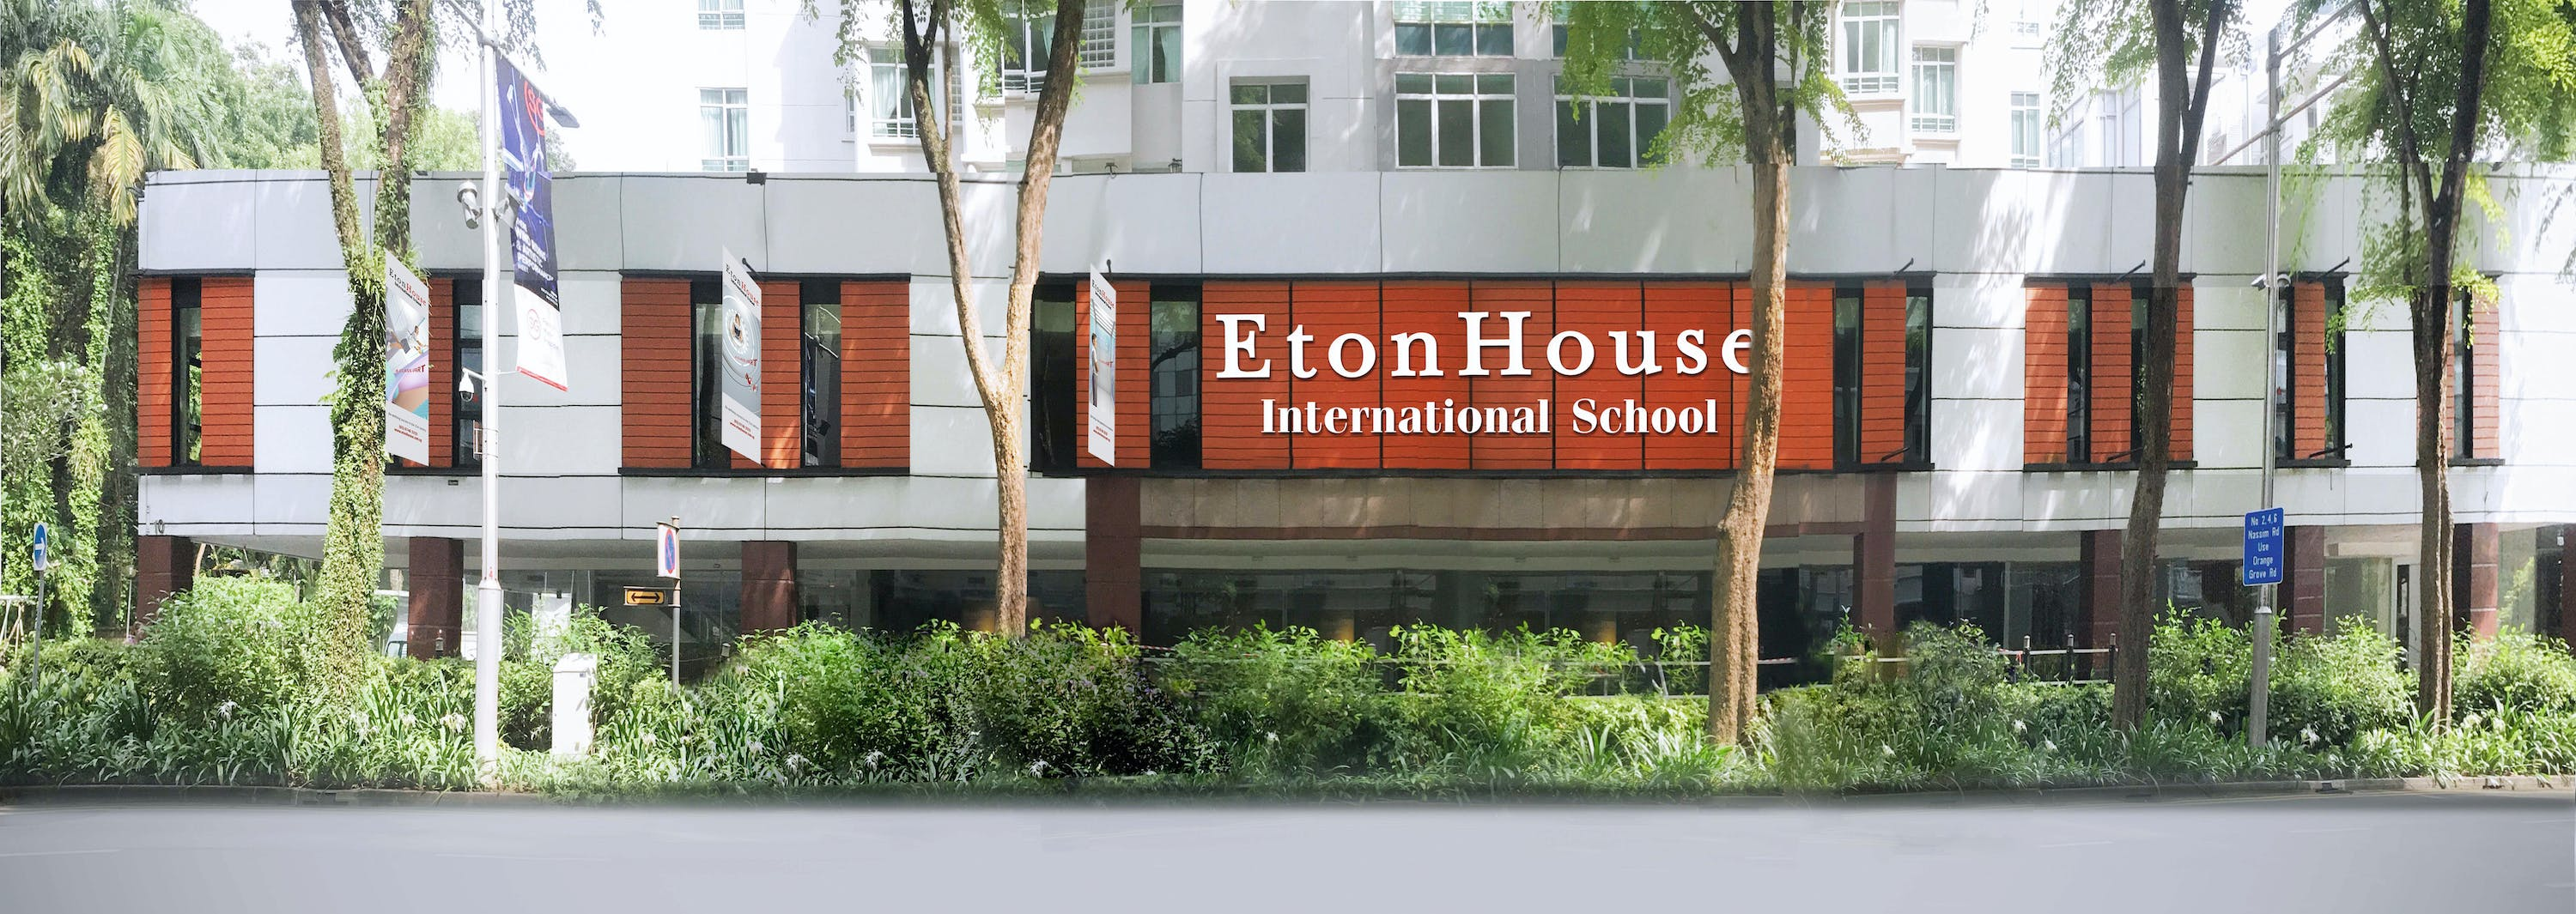 EtonHouse International School at Orchard